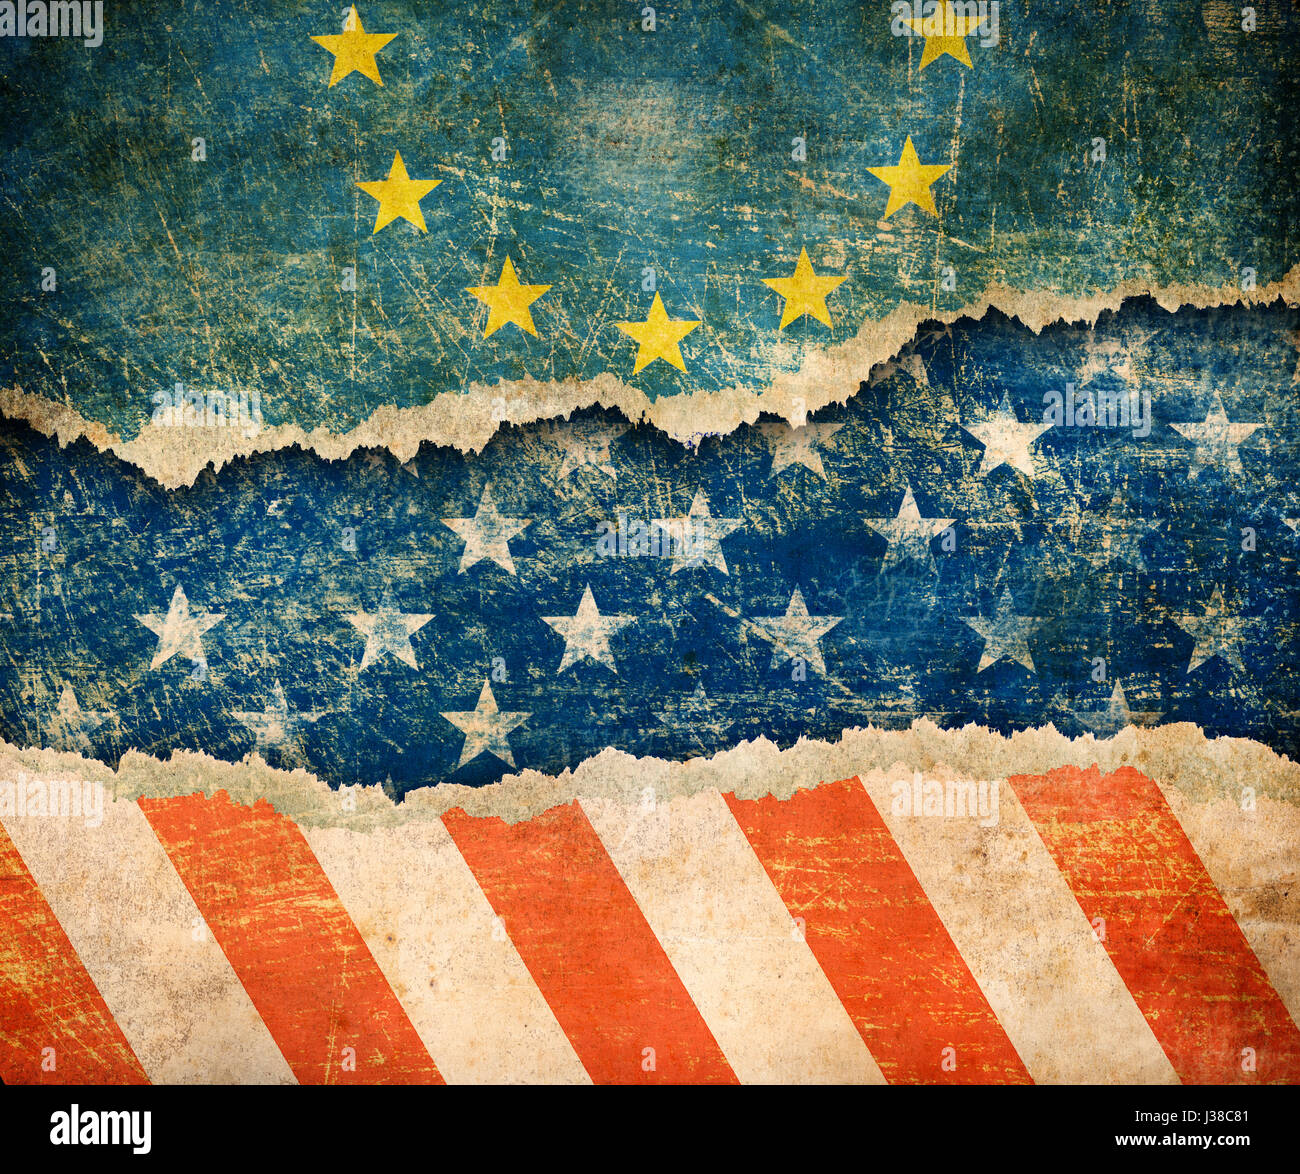 European union and USA flags on cardboard pieces 3d illustration - Stock Image